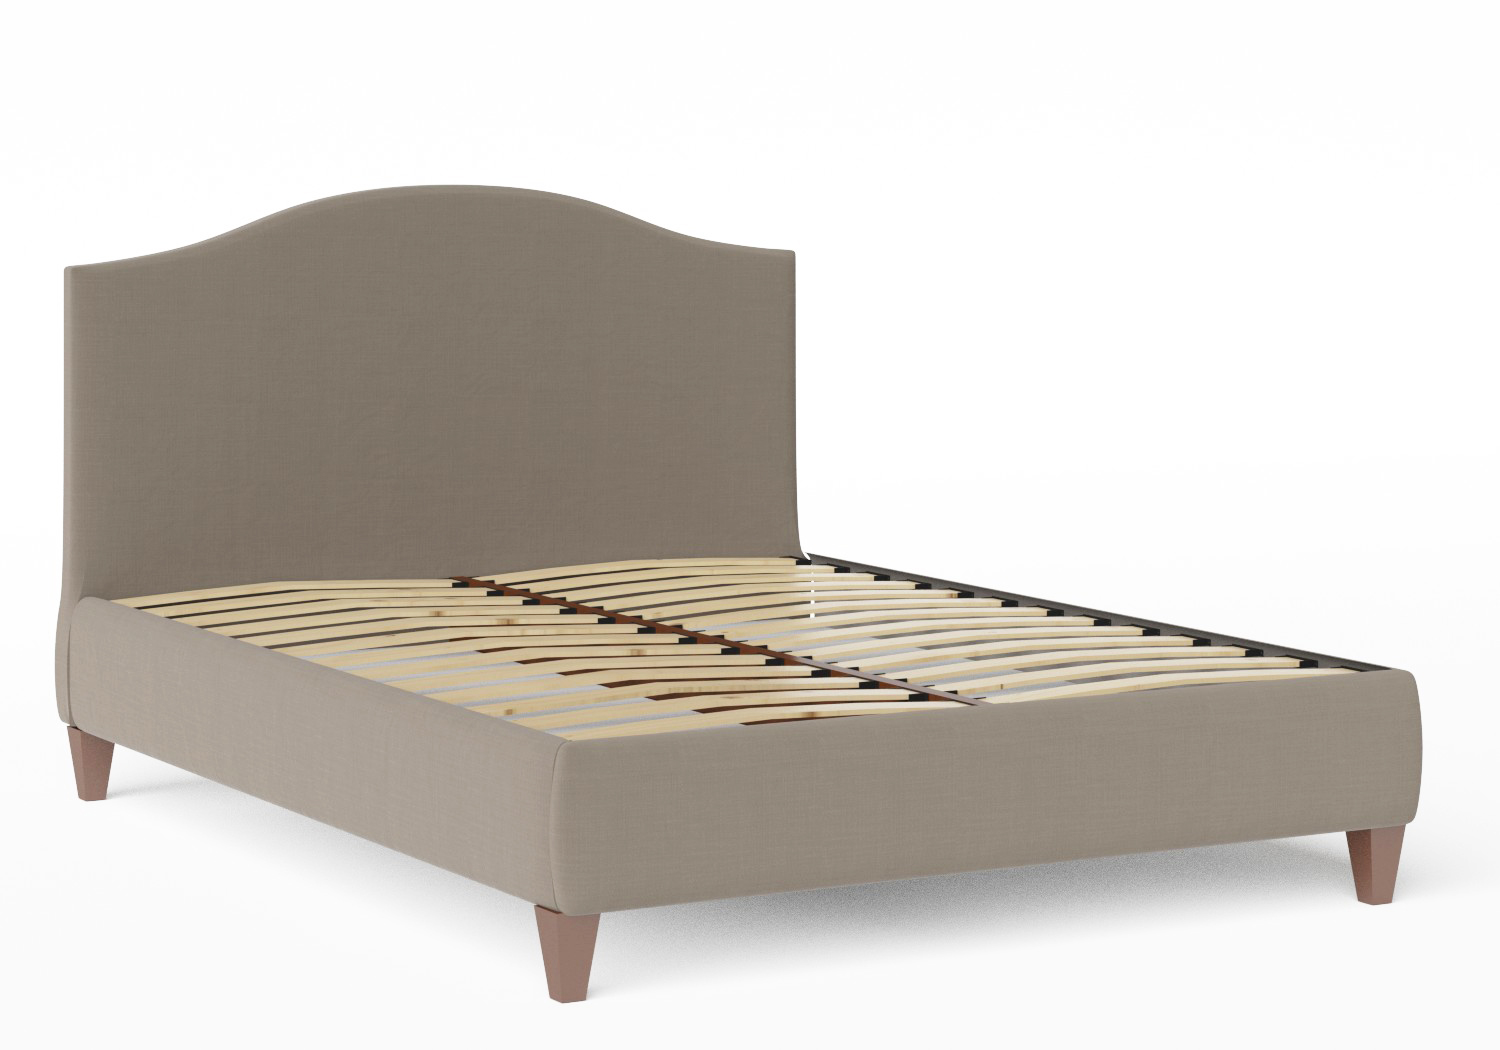 Daniella Upholstered bed in Grey fabric shown with slatted base